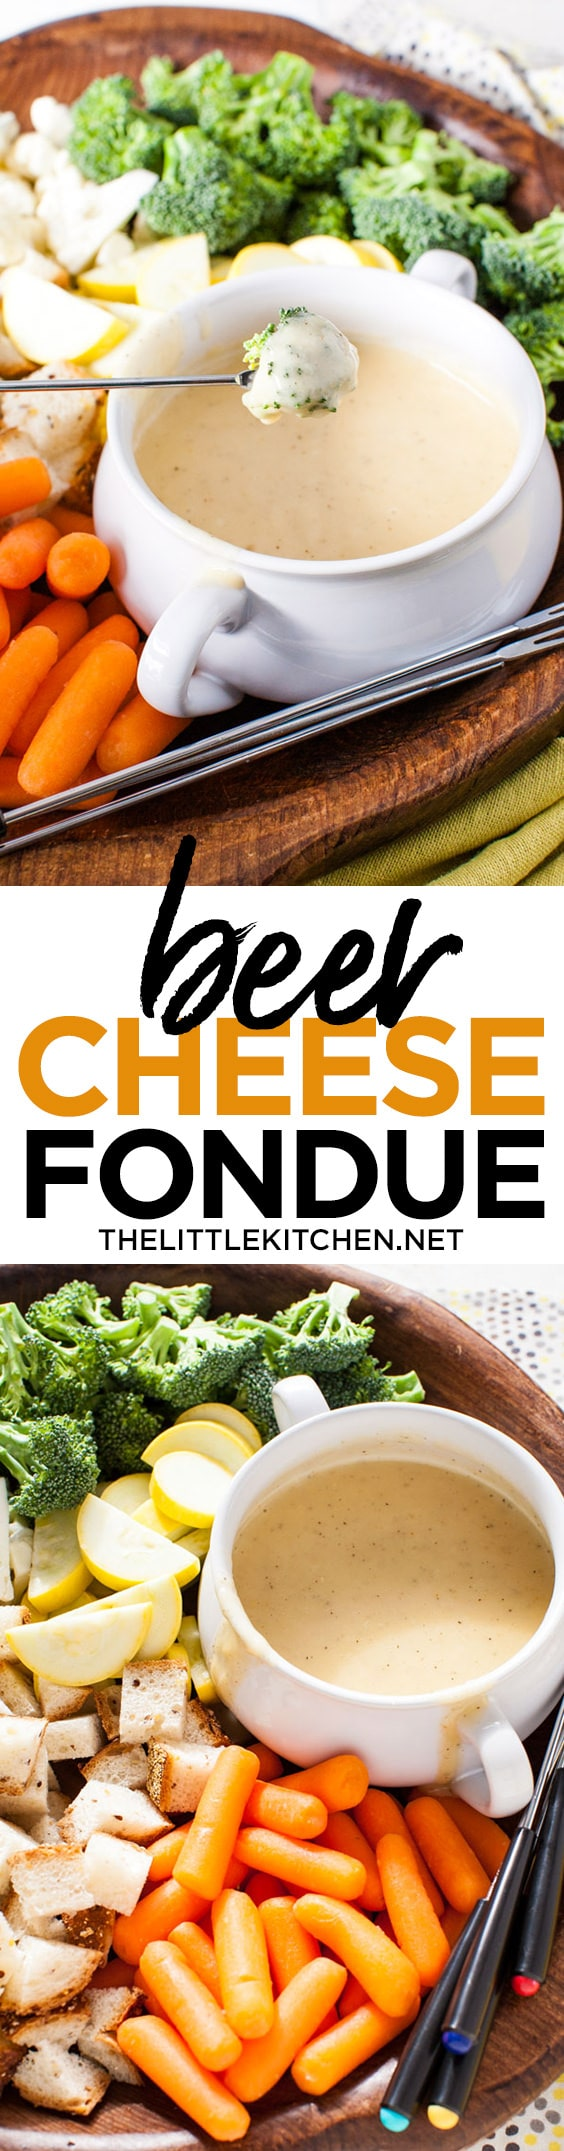 Beer Cheese Fondue from thelittlekitchen.net